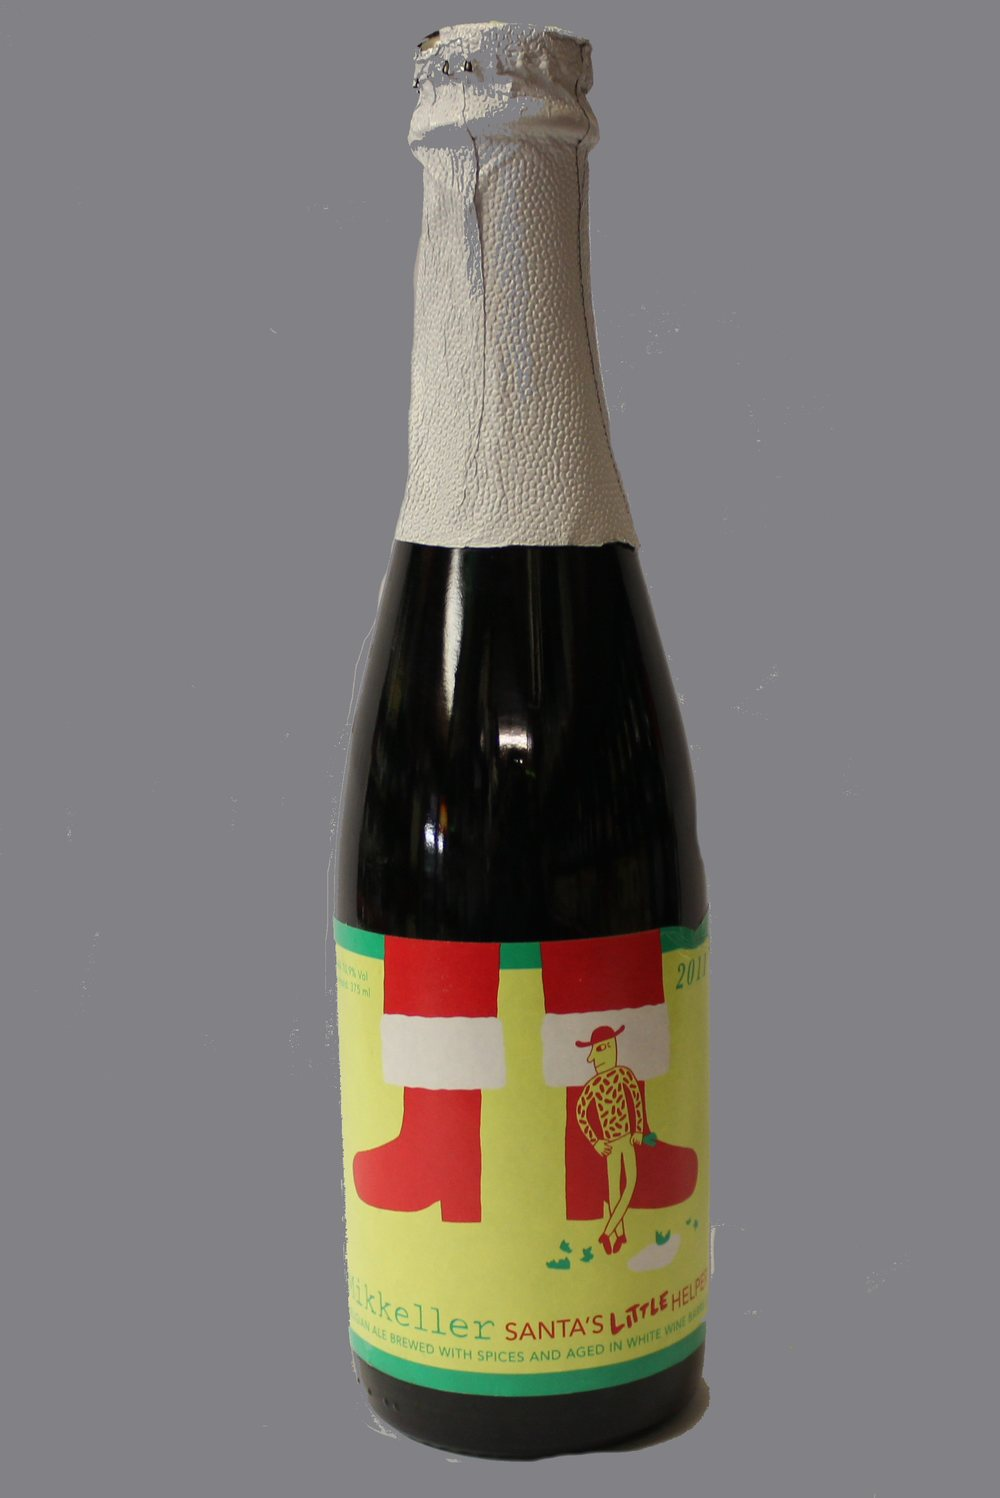 MIKKELLER-Santa`s Little Helper 2012 -white wine barrel aged.jpg